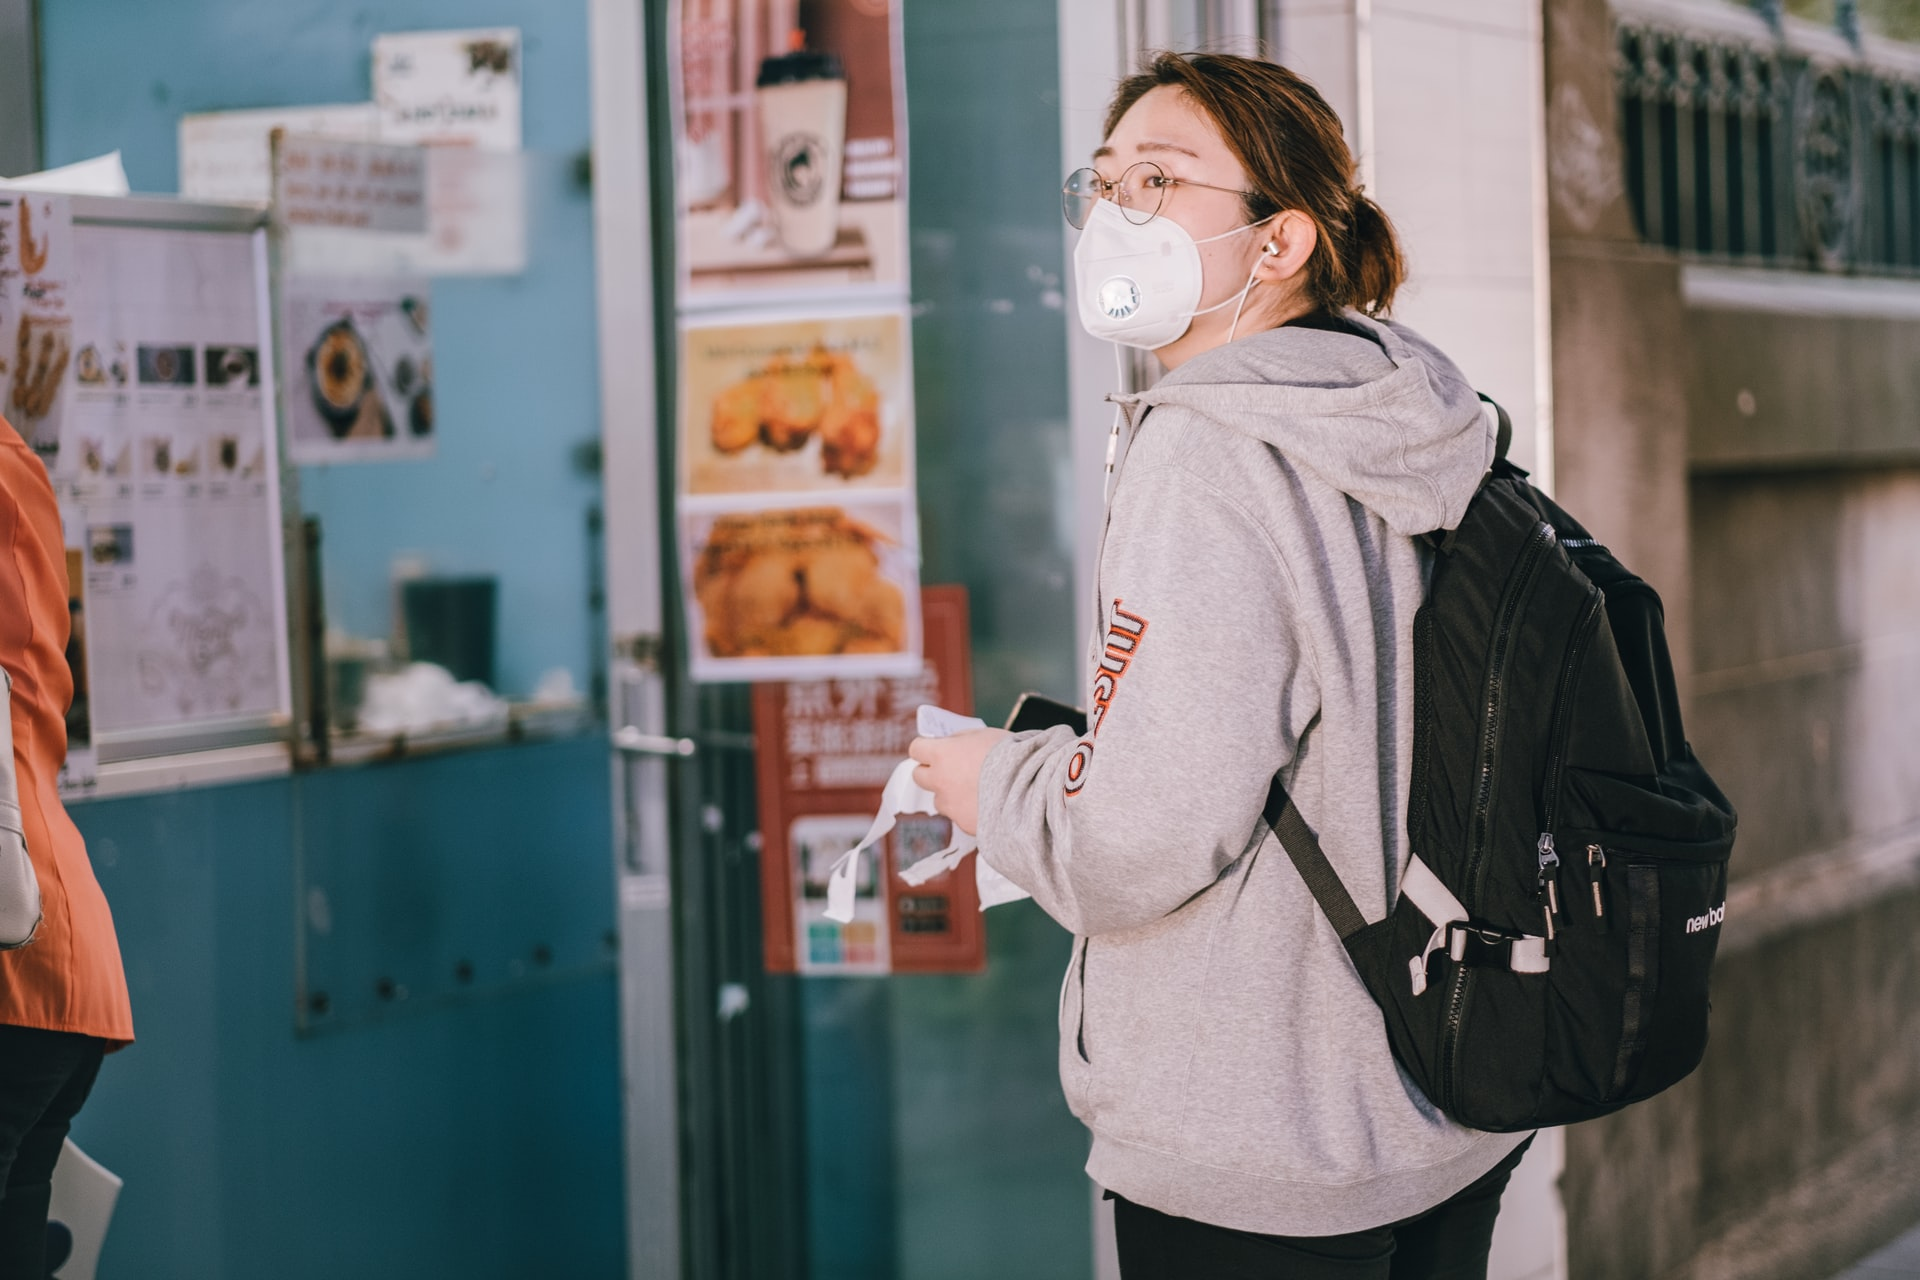 Photo of a woman in face mask waiting in a line to get takeaway food during the coronavirus pandemic